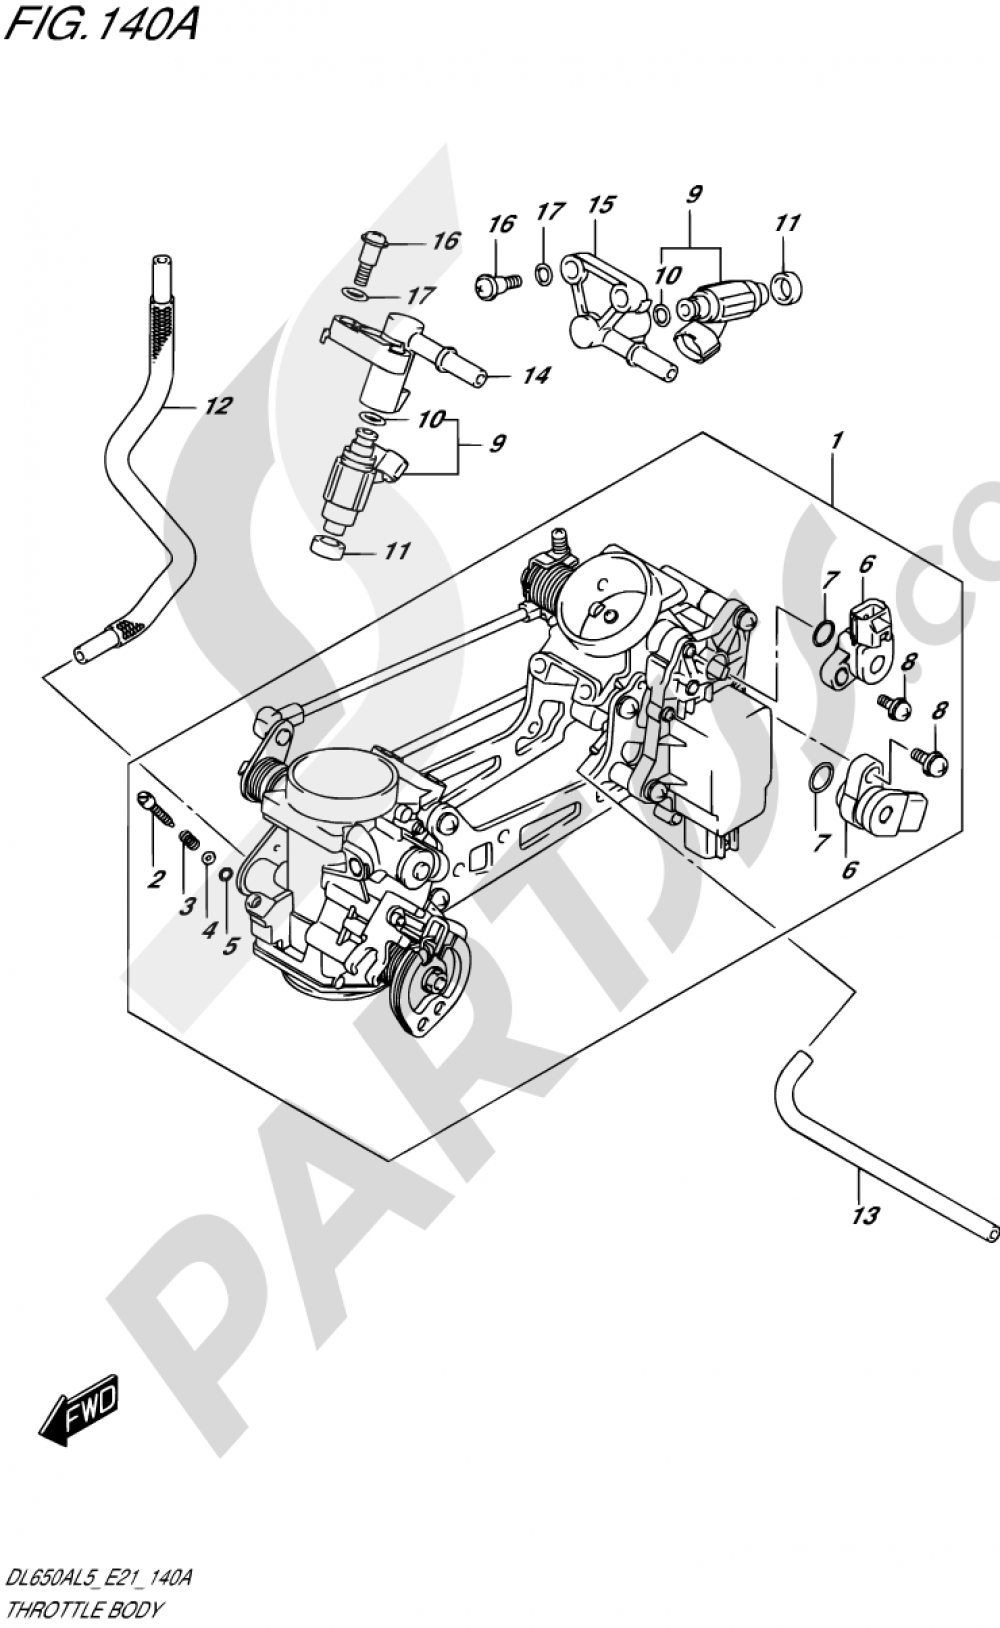 140A - THROTTLE BODY Suzuki VSTROM DL650A 2015